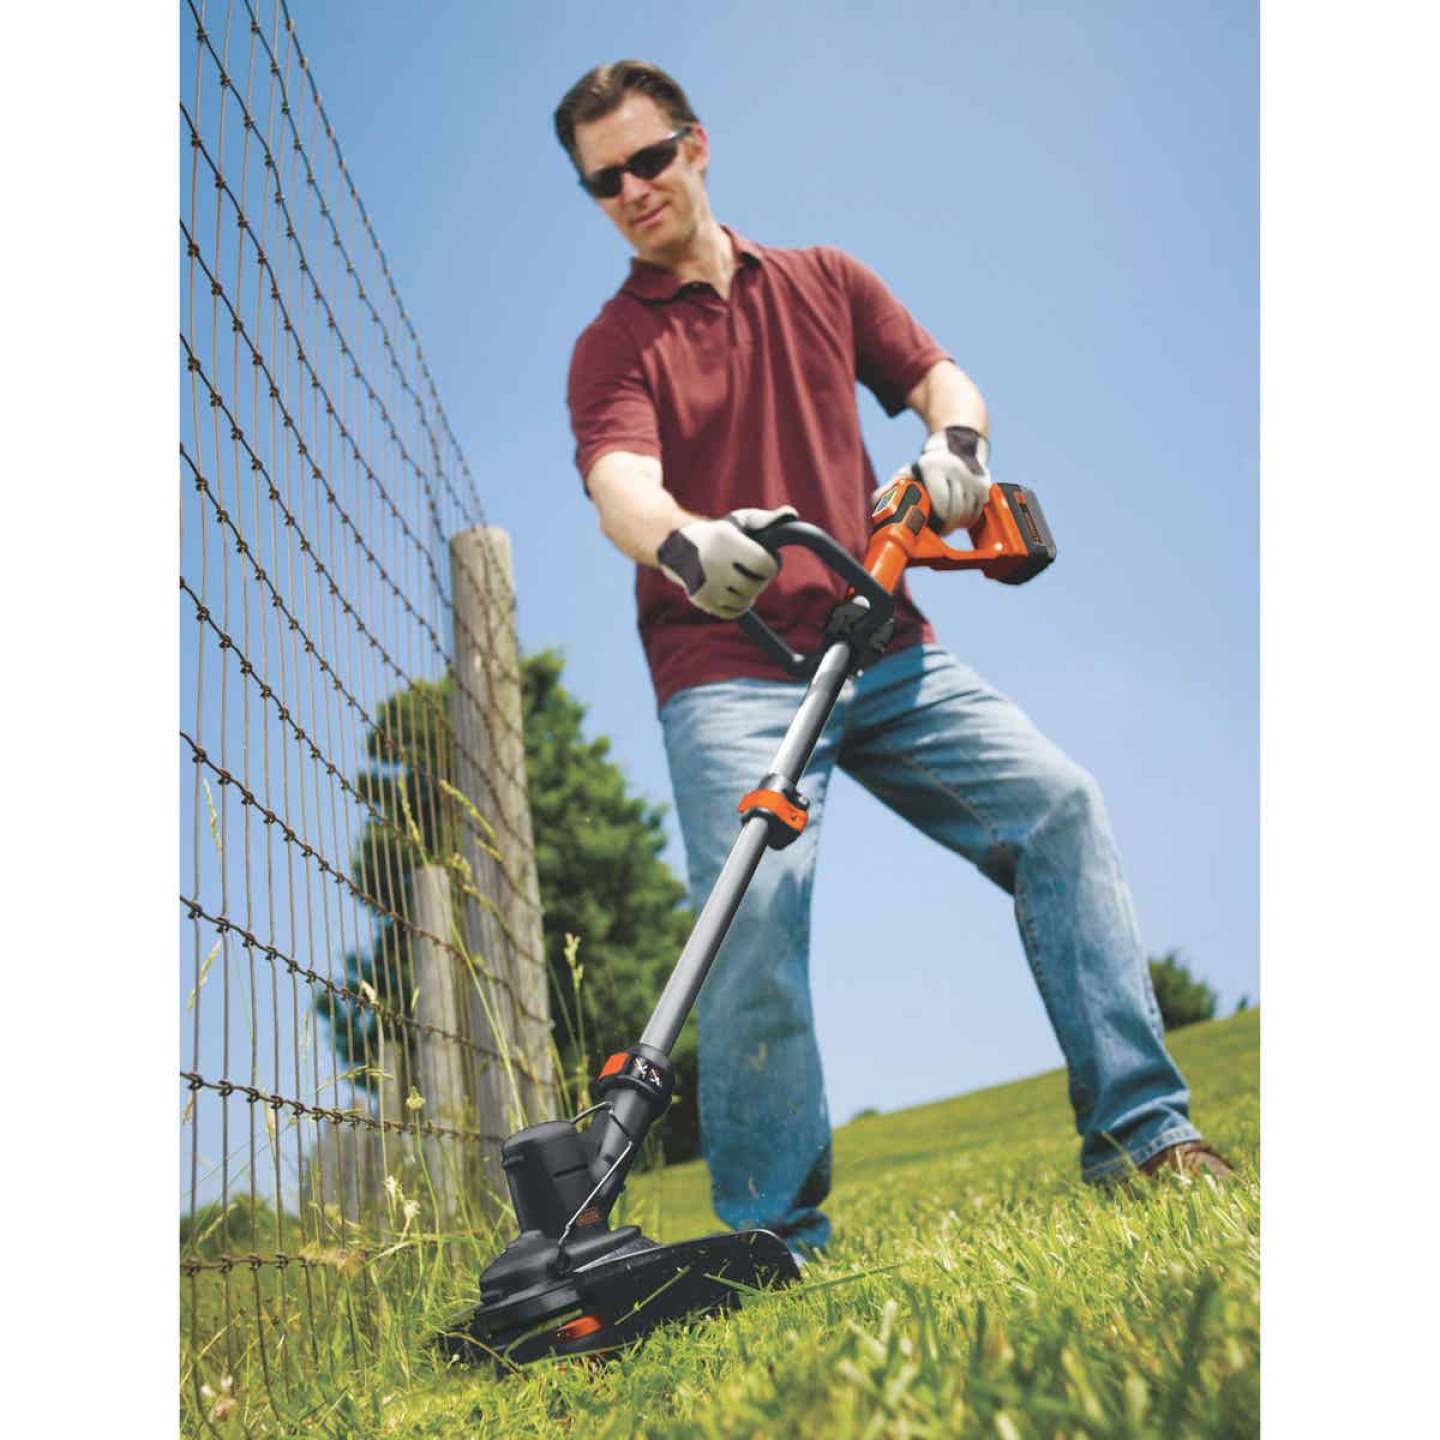 Black & Decker 40V MAX 13 In. Lithium Ion Straight Cordless String Trimmer Image 2